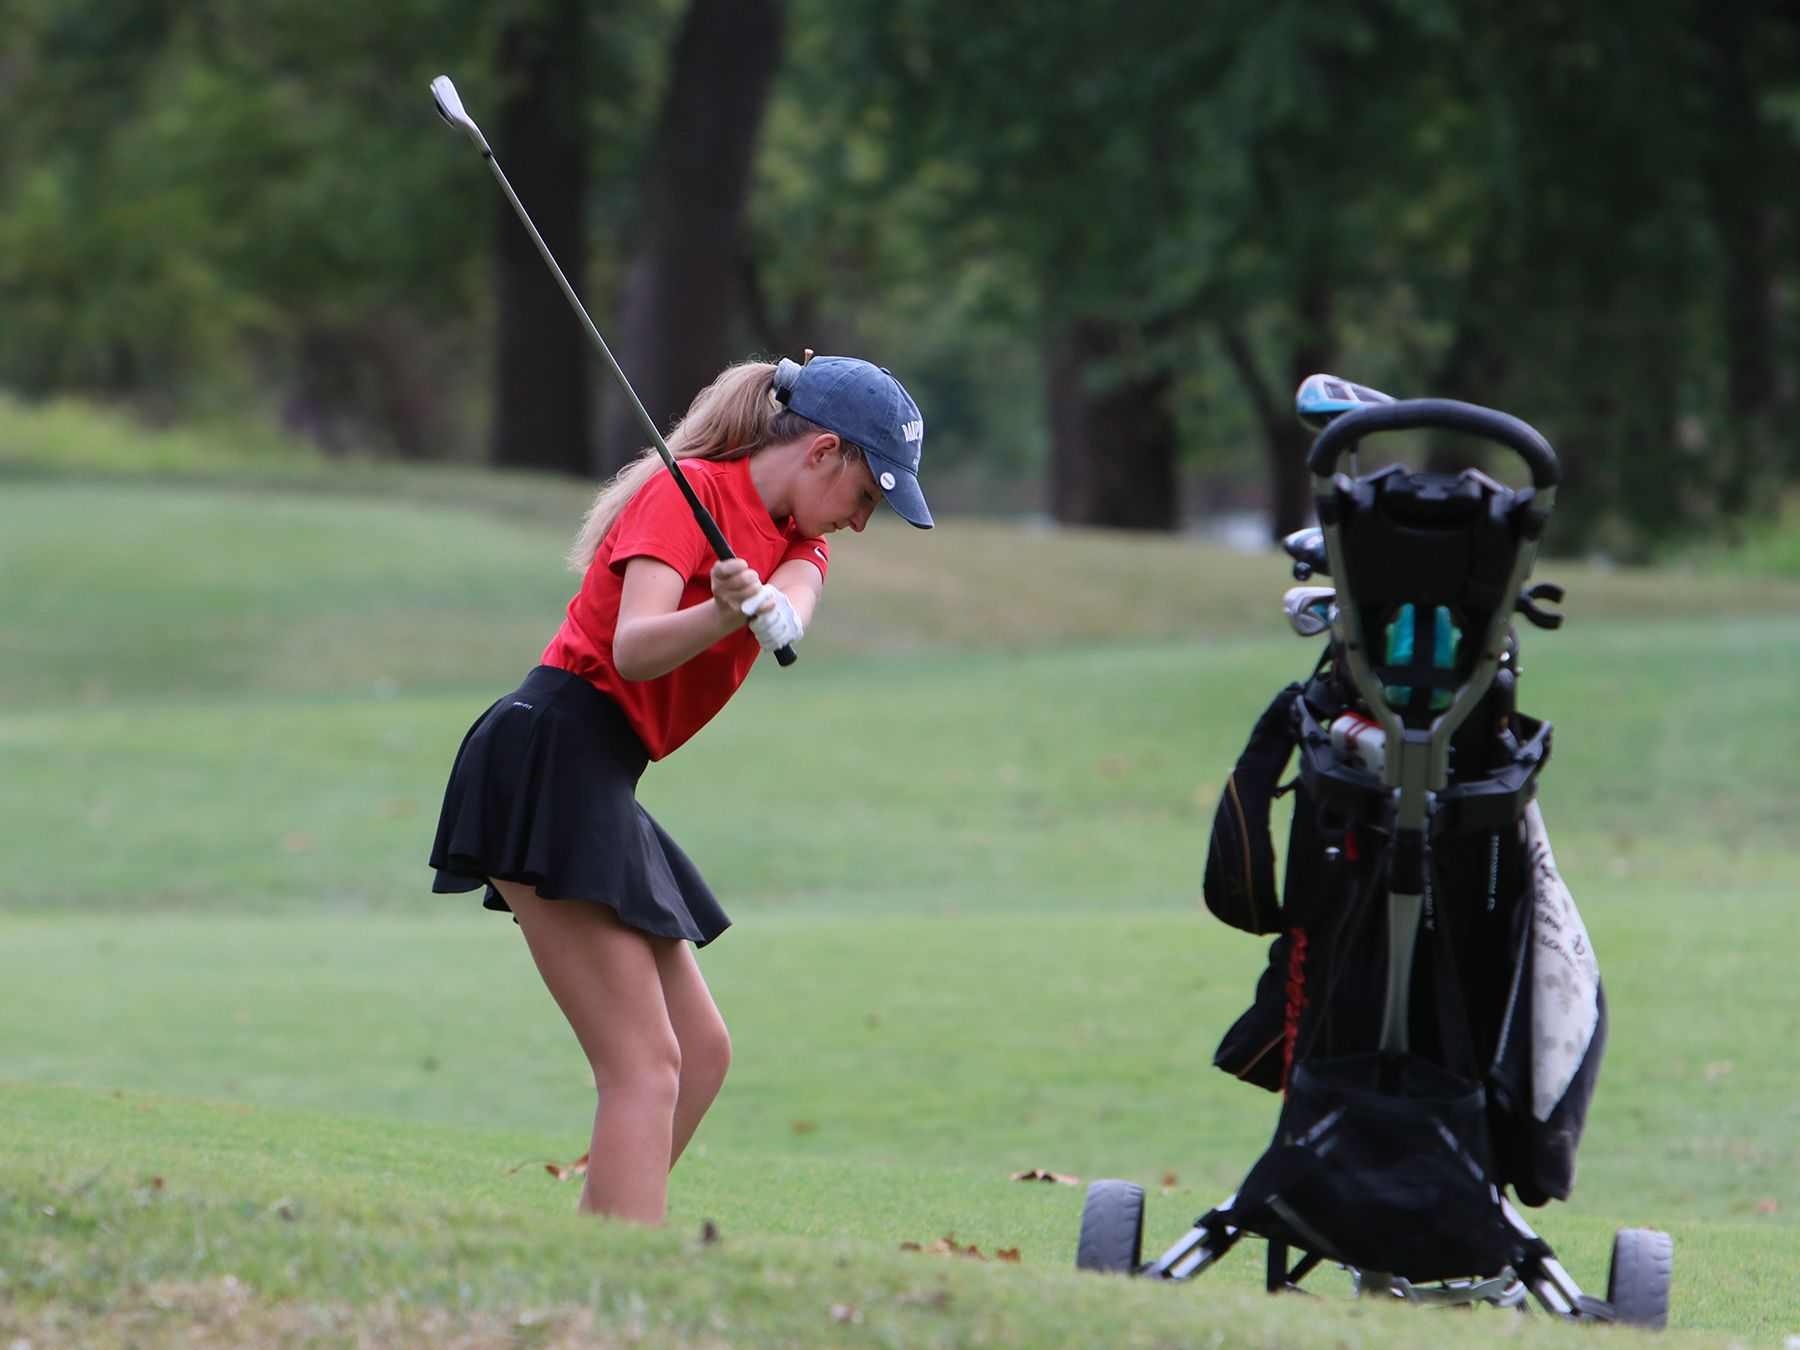 A CJ Golf player takes her shot